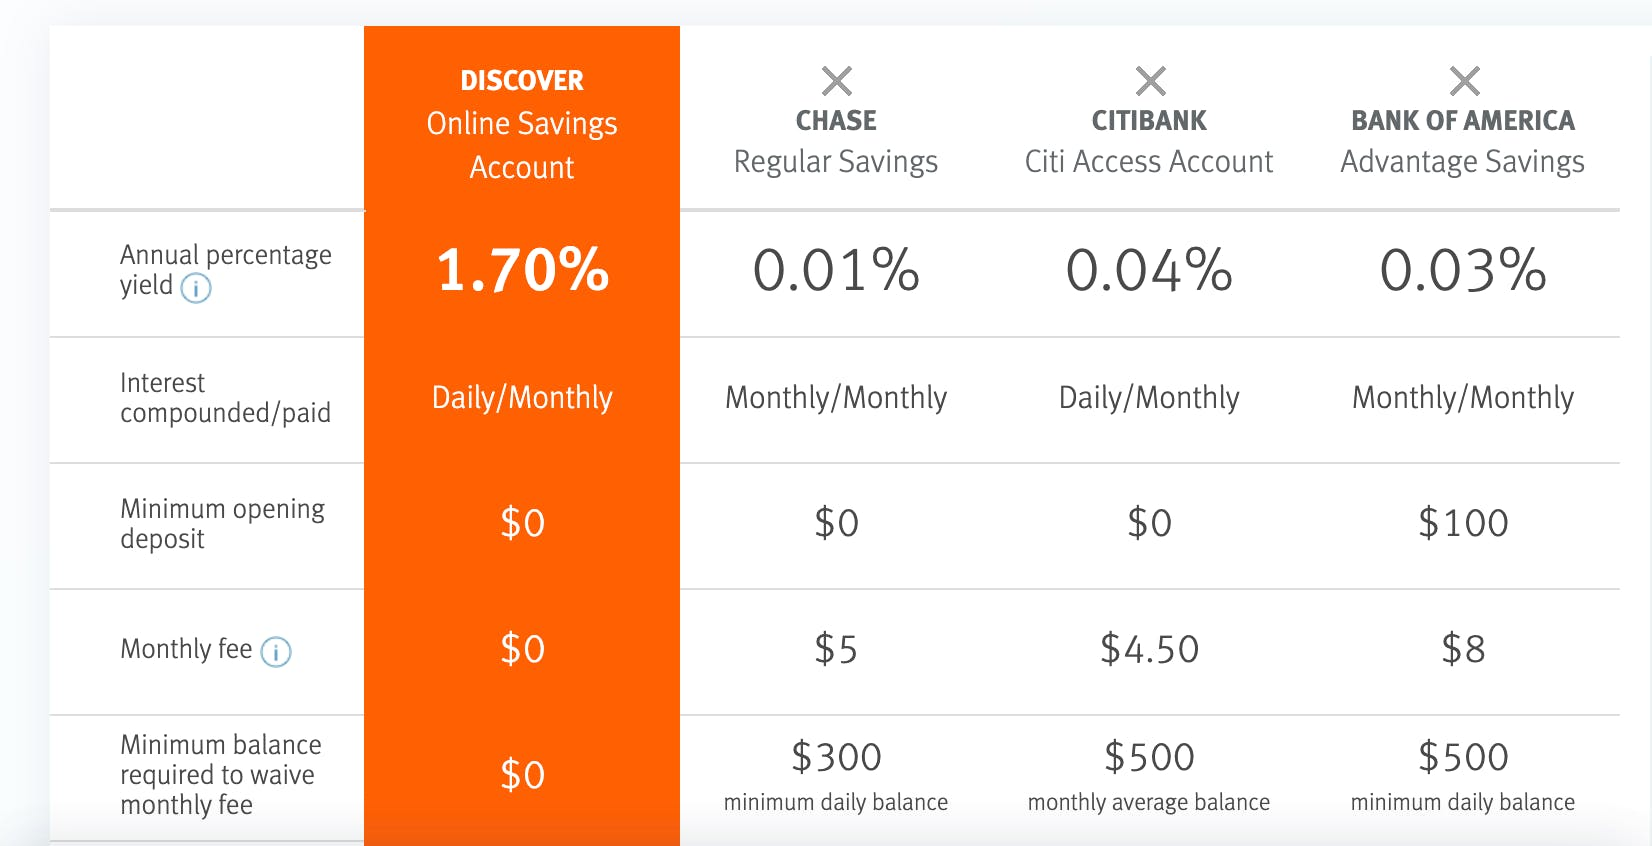 Discover Online Banking review: pros, cons, key features, and service